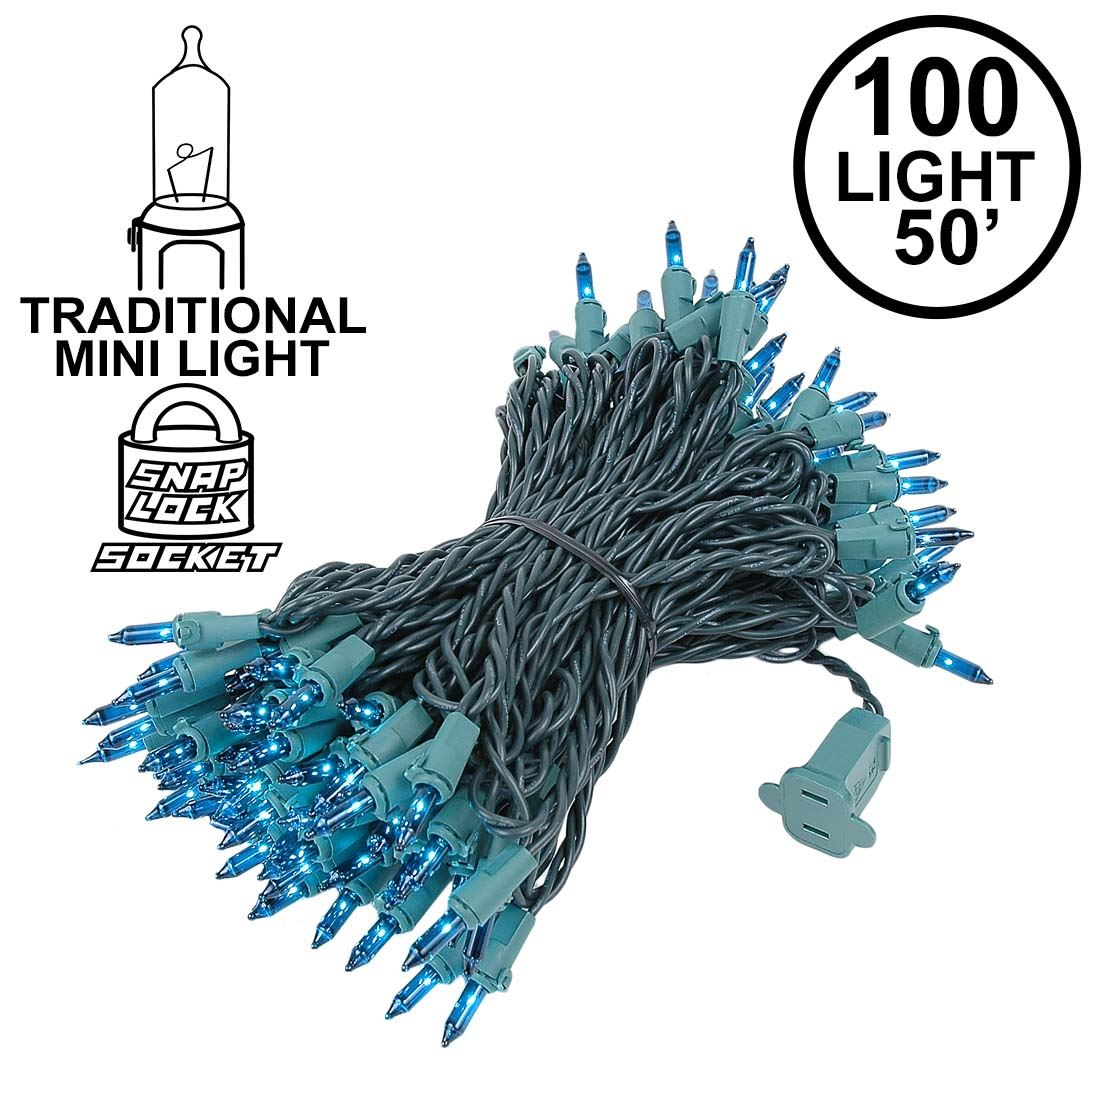 Picture of Teal Christmas Mini Lights 100 Light 50 Feet Long on Green Wire